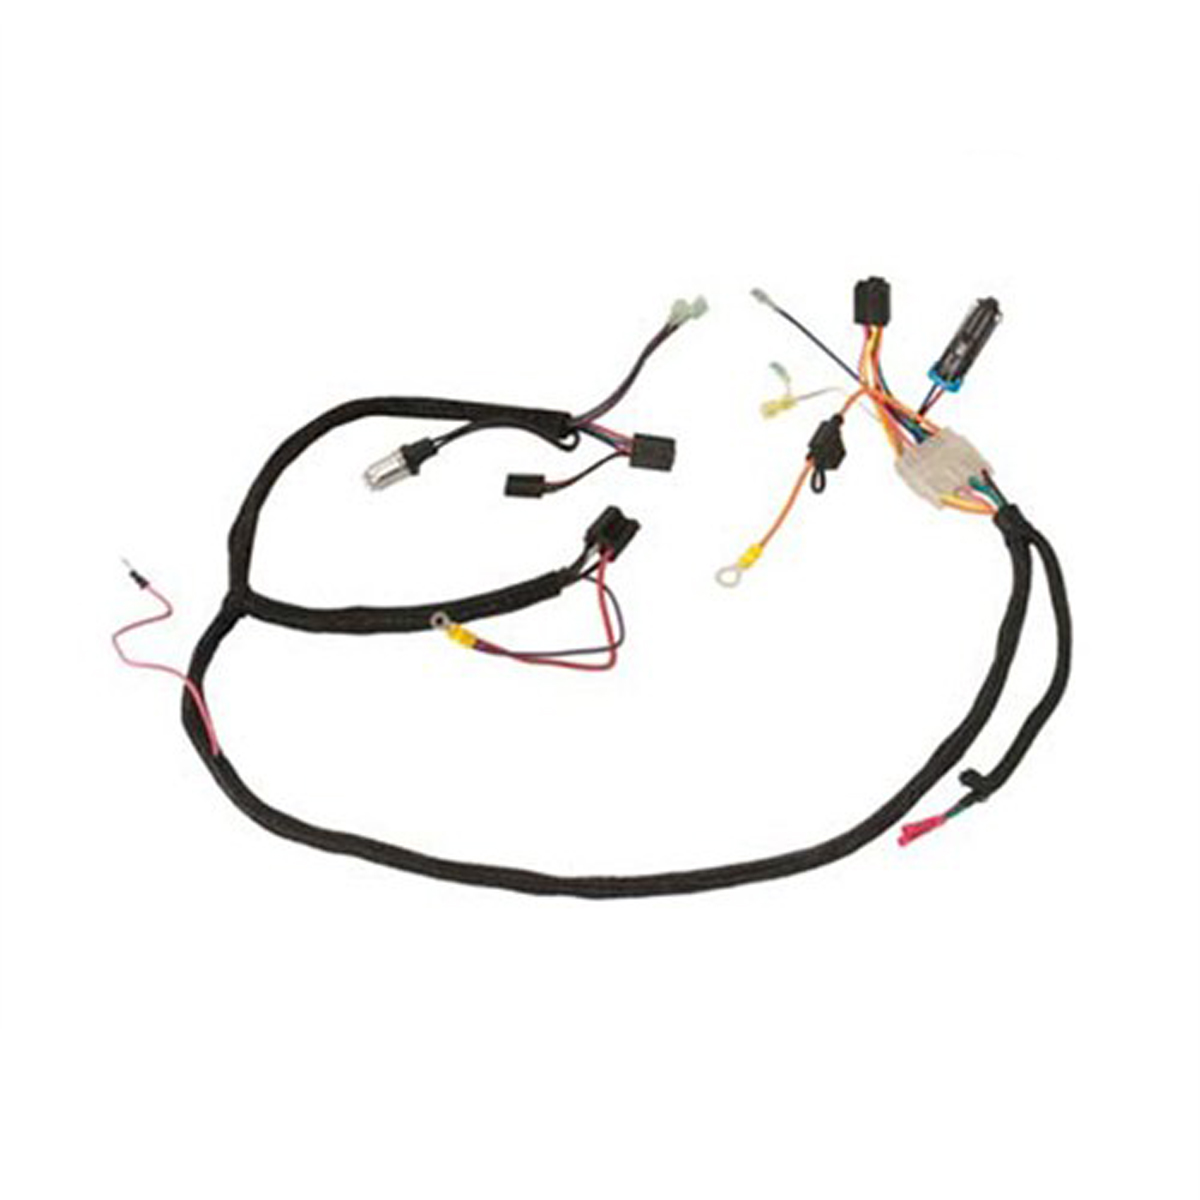 500002 wiring harnesses for dixie chopper lawn mowers